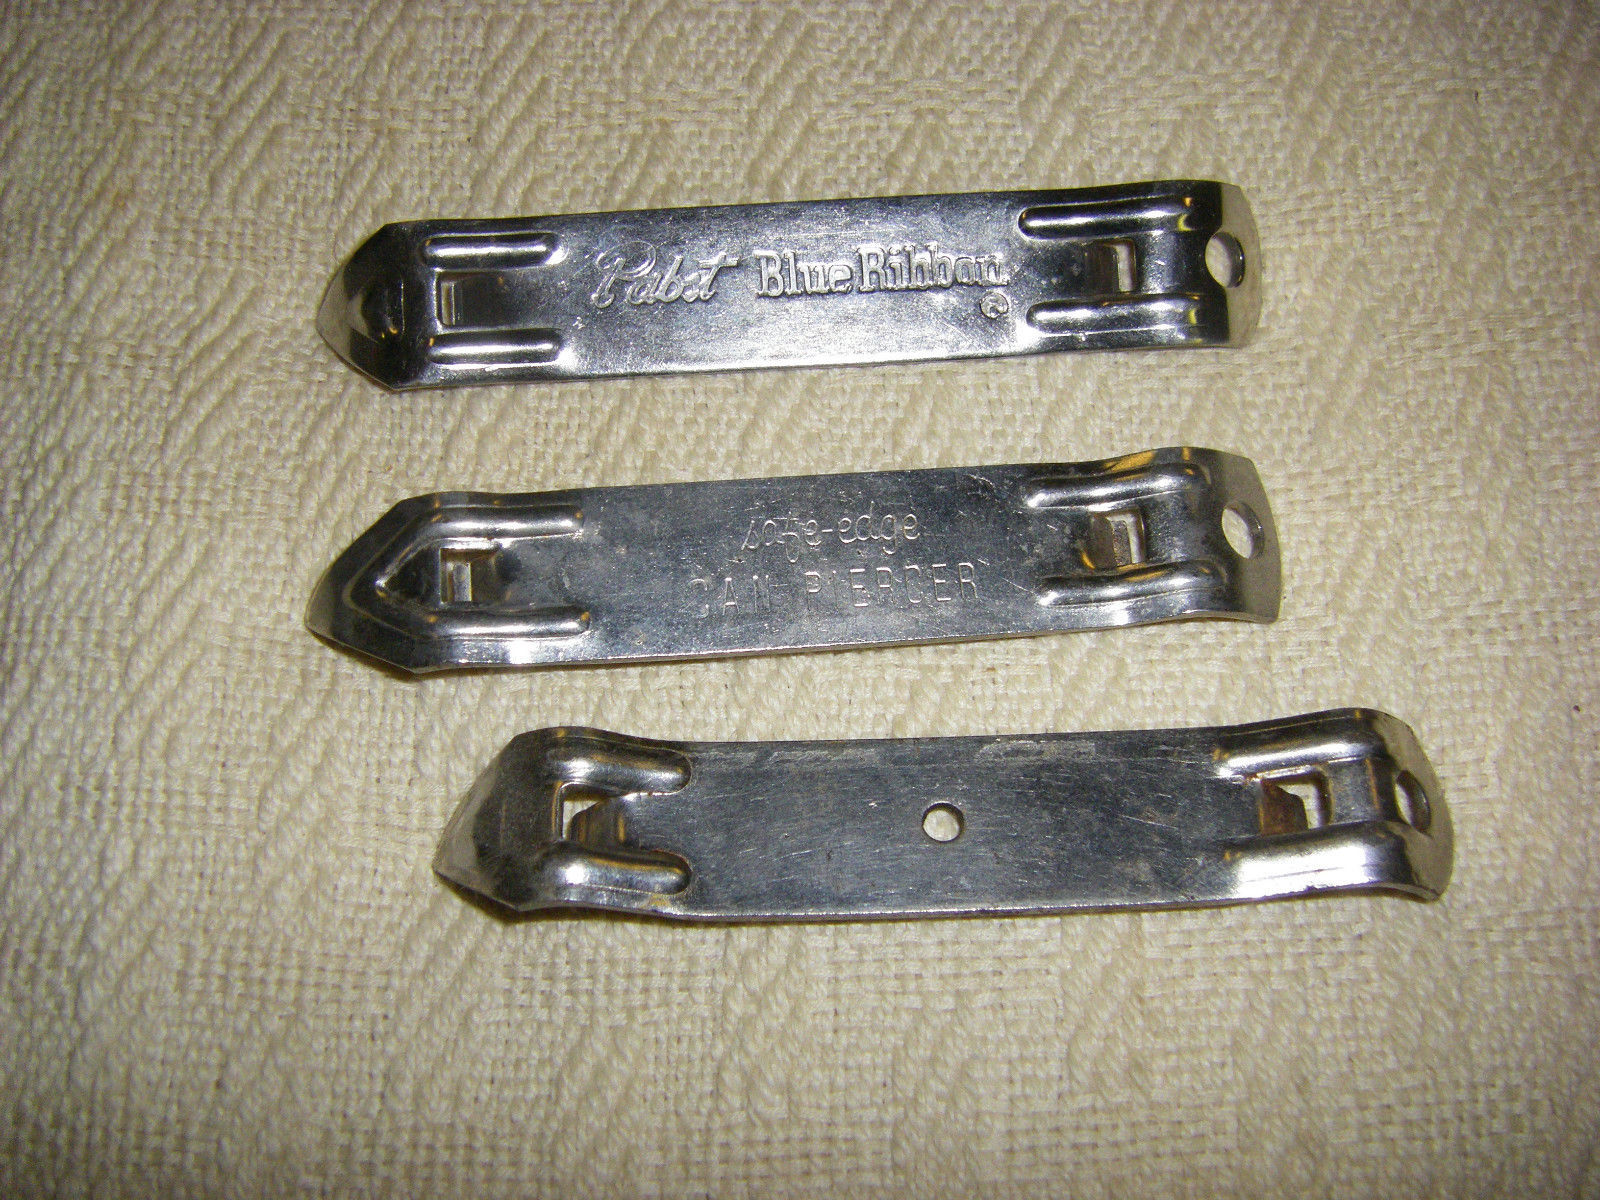 7 Beer Openers Vintage Collinsware and others